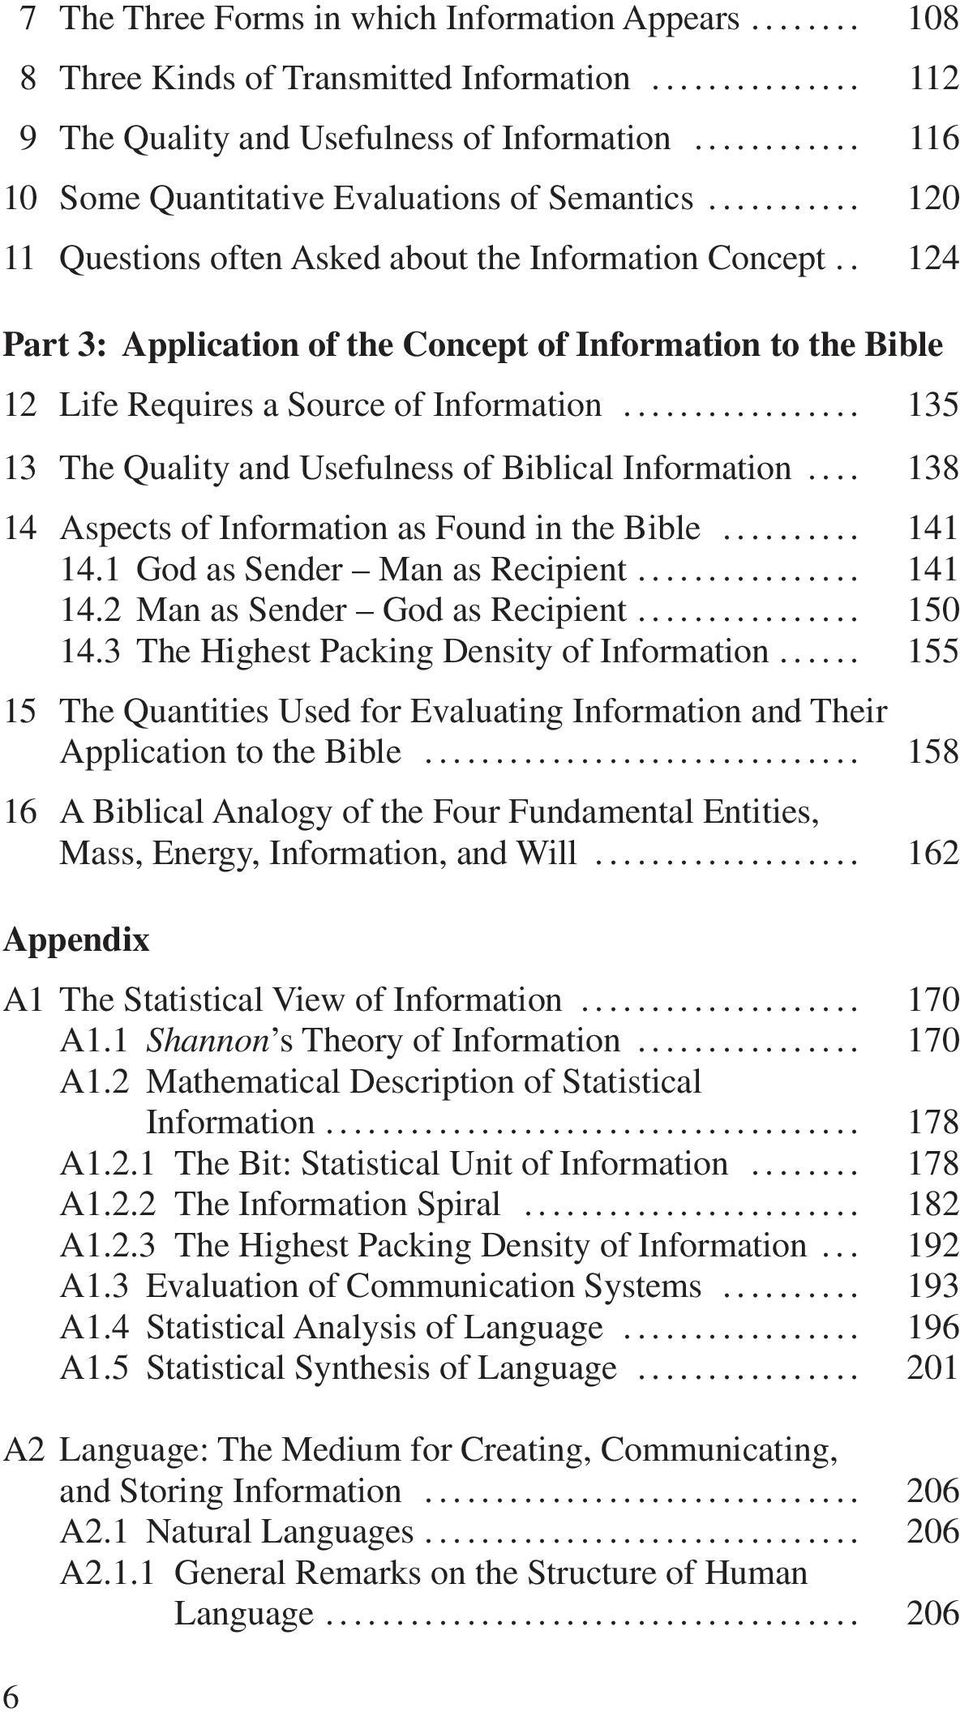 .. 135 13 The Quality and Usefulness of Biblical Information... 138 14 Aspects of Information as Found in the Bible... 141 14.1 God as Sender Man as Recipient... 141 14.2 Man as Sender God as Recipient.